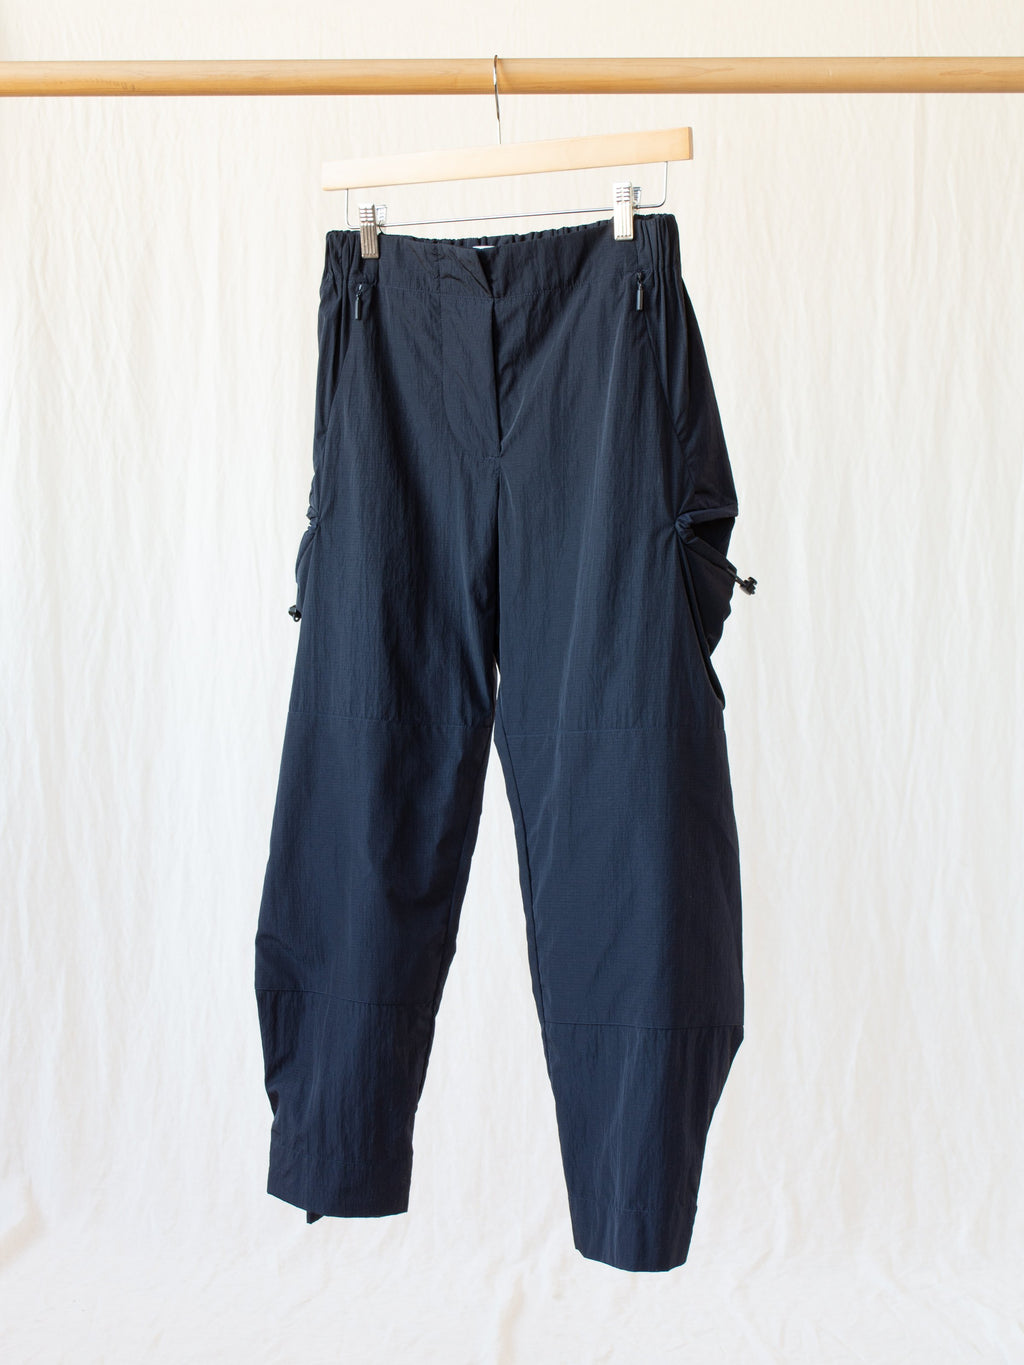 Romero Technical Pants